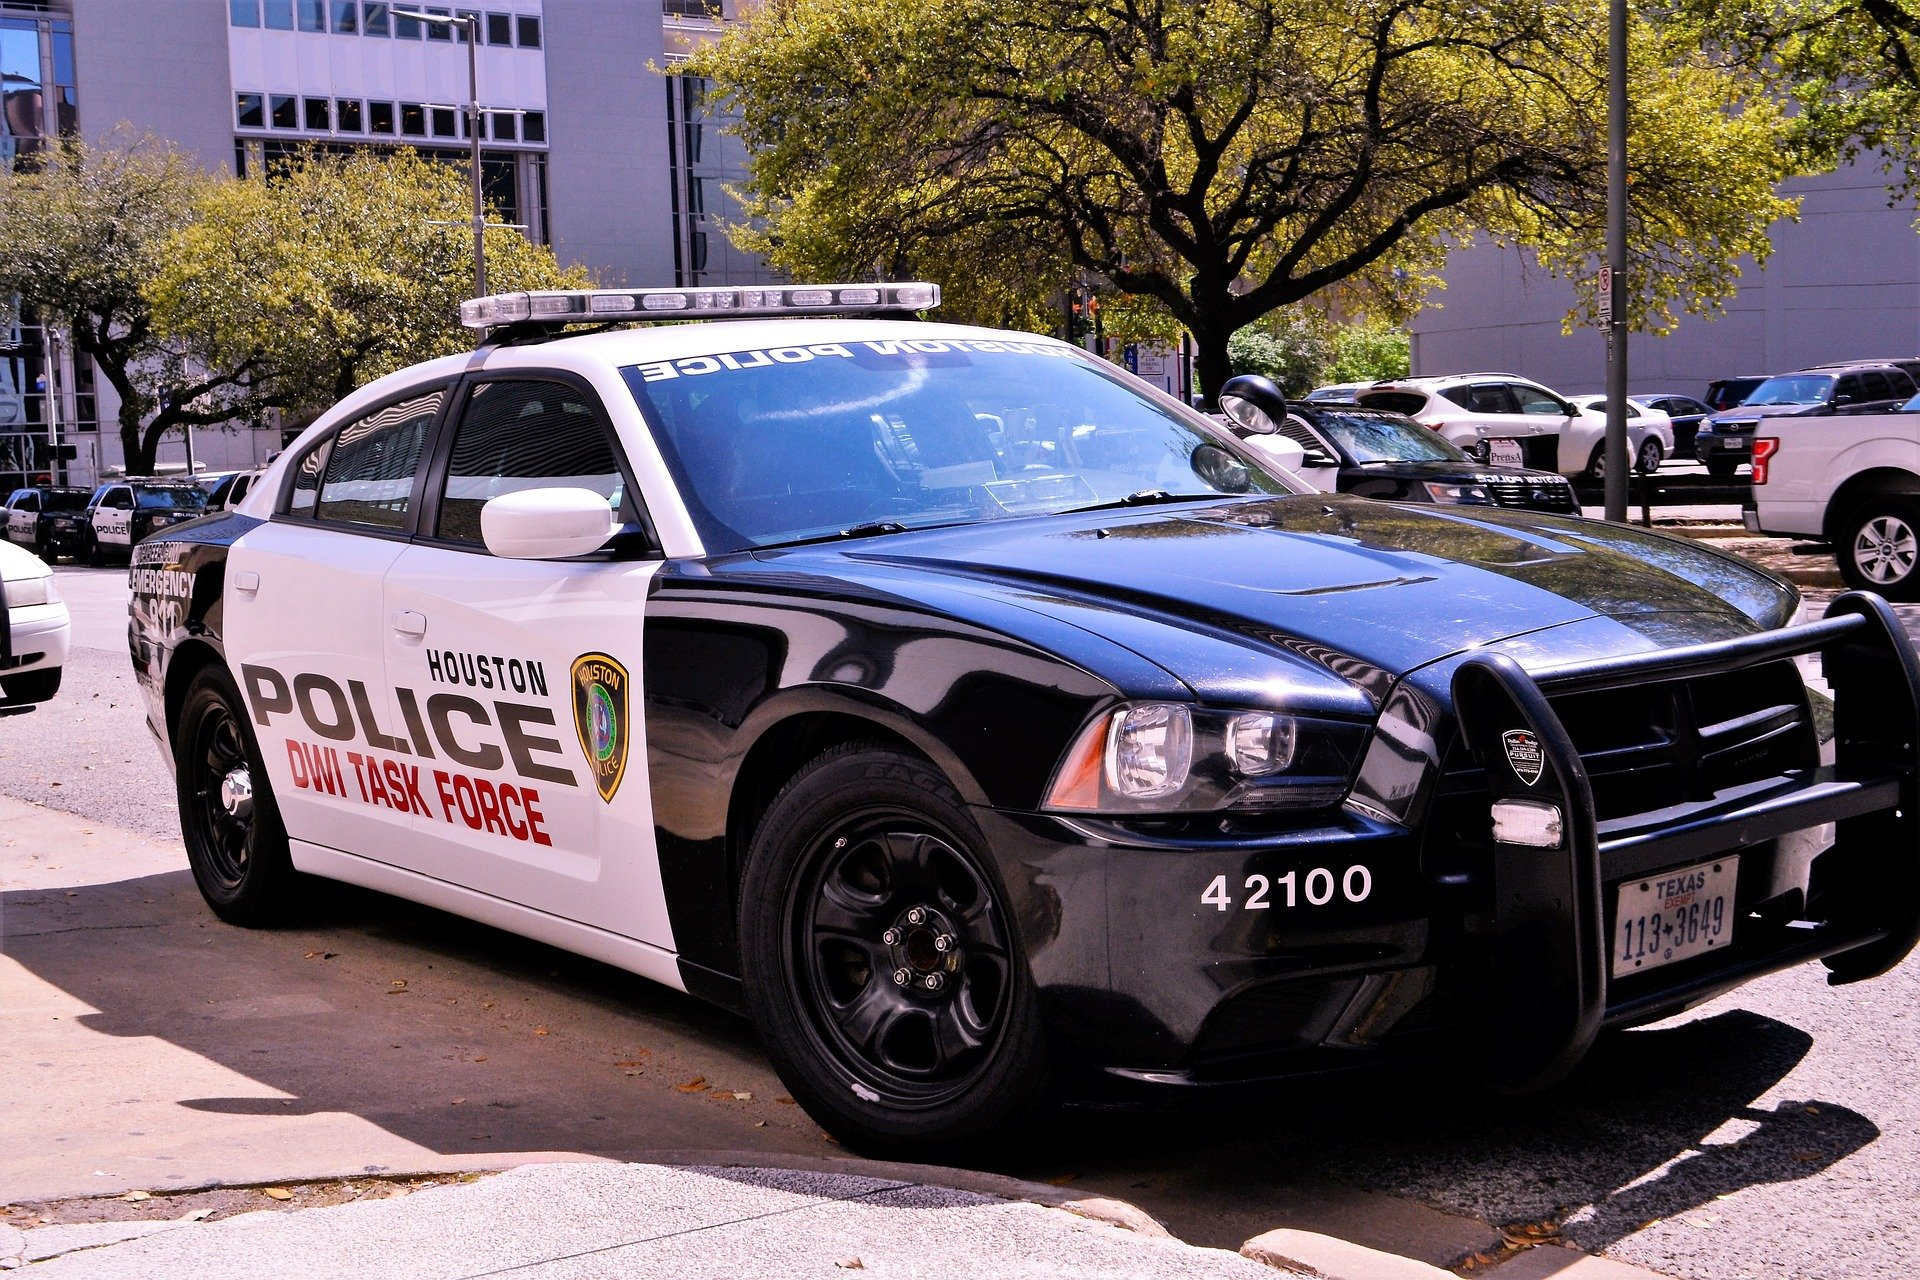 Pictured - A photo of a police squad vehicle   Source: Pixabay